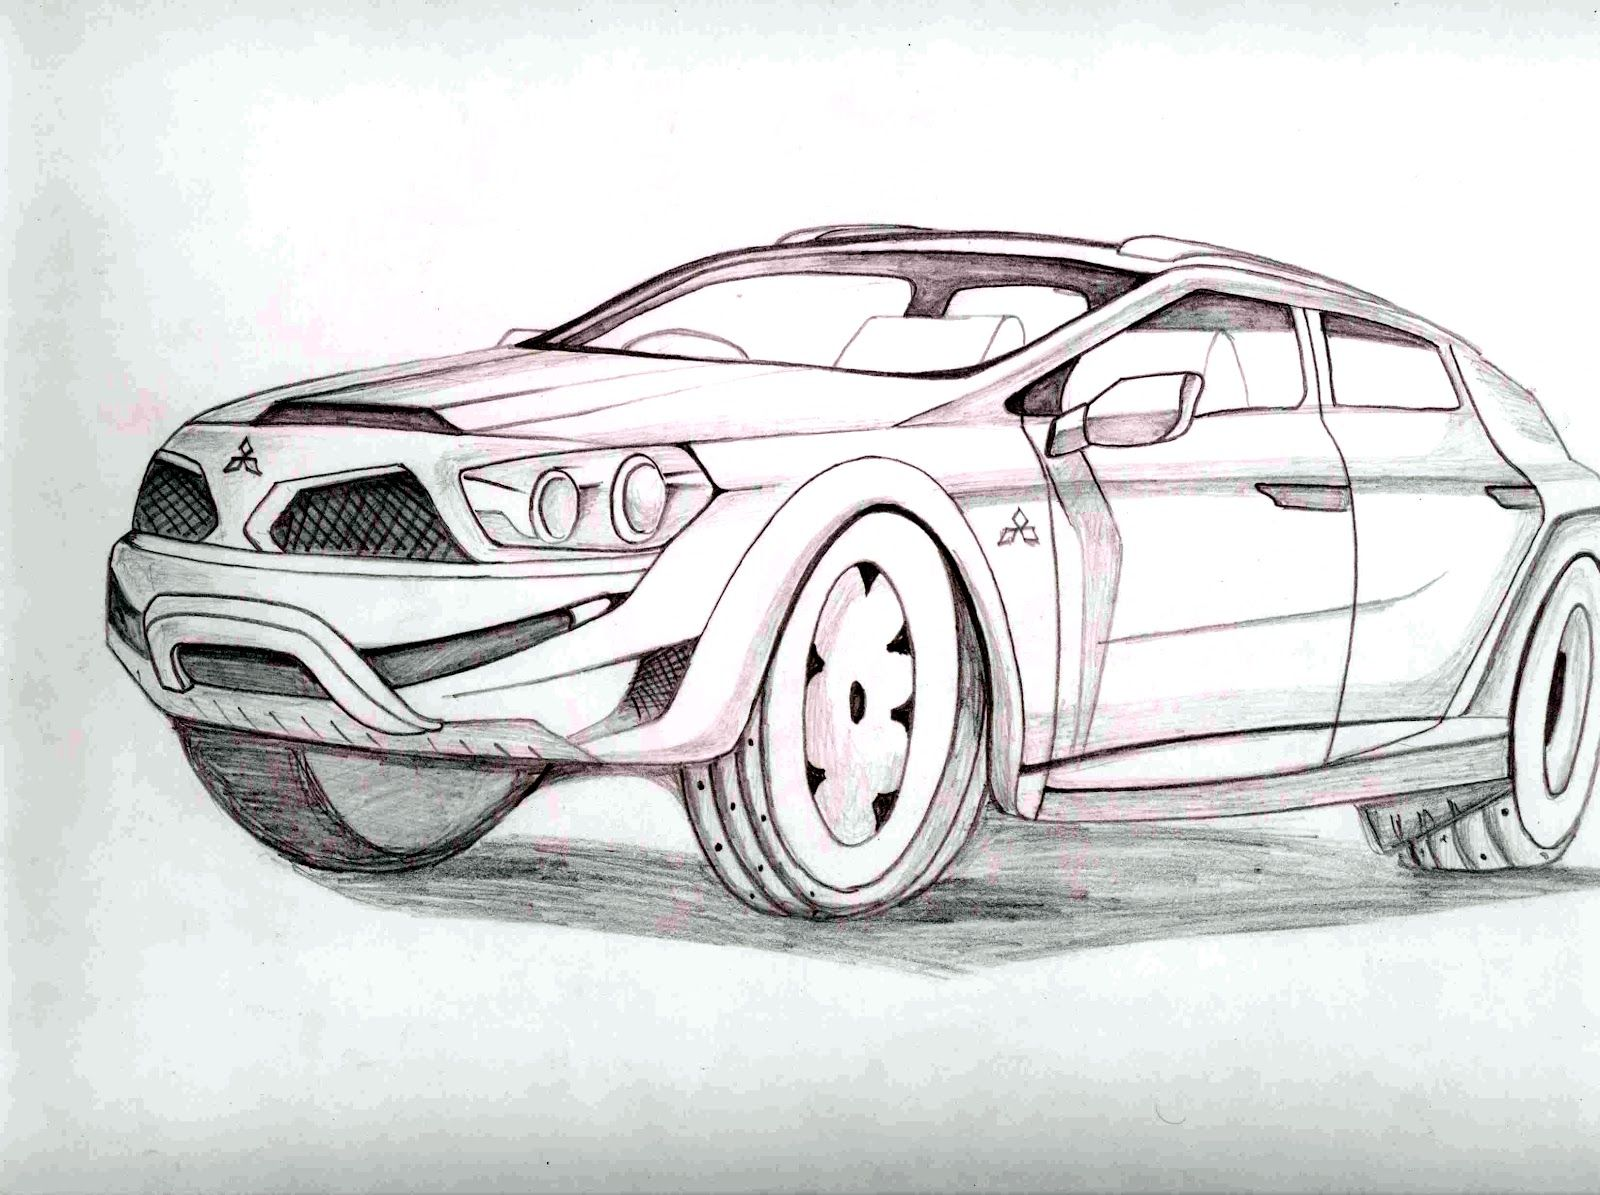 Cool pencil drawings of cars cool easy penc pencil drawings of